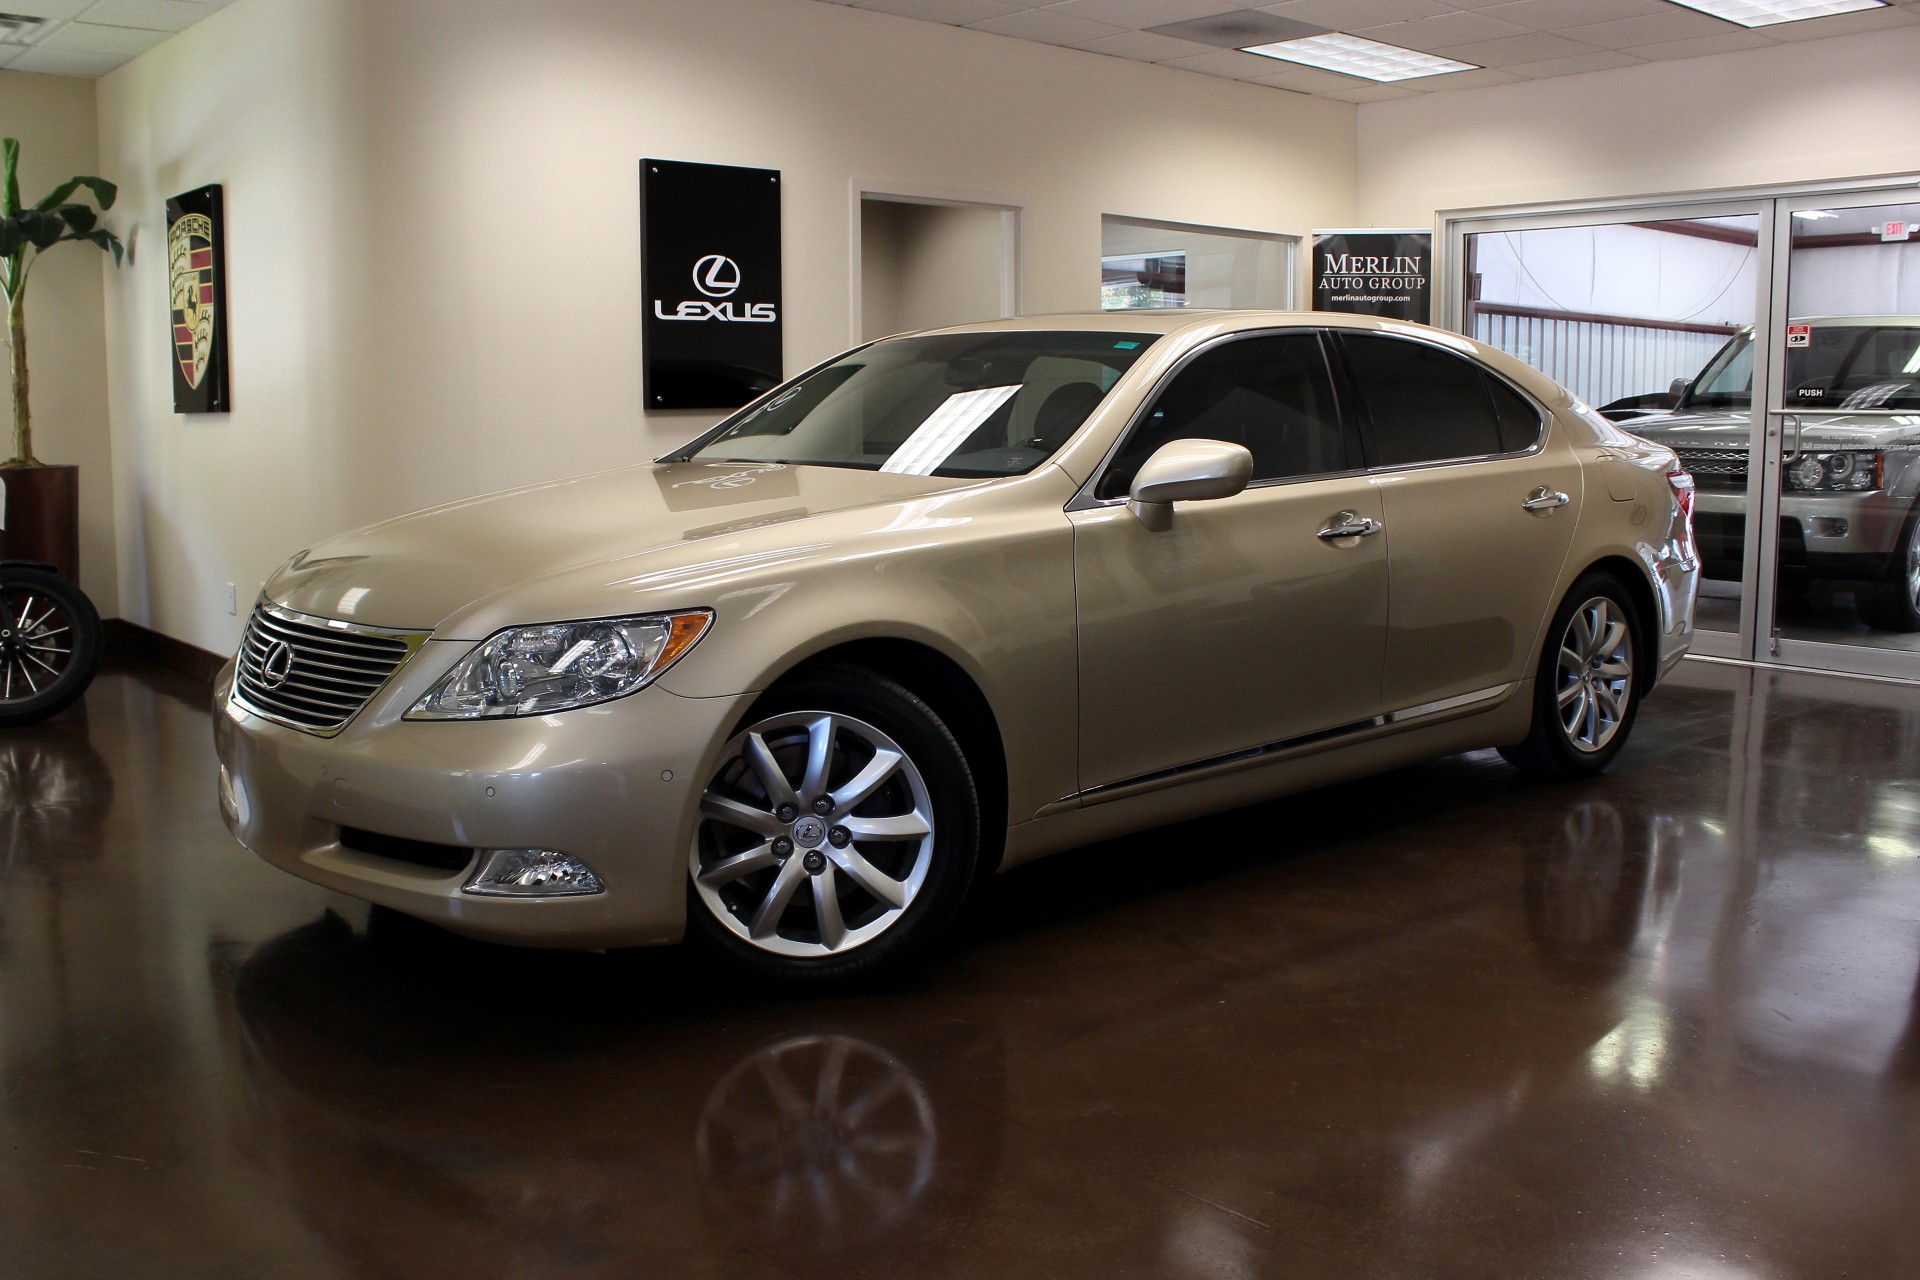 used 2008 lexus ls 460 stock p2893 ultra luxury car from. Black Bedroom Furniture Sets. Home Design Ideas